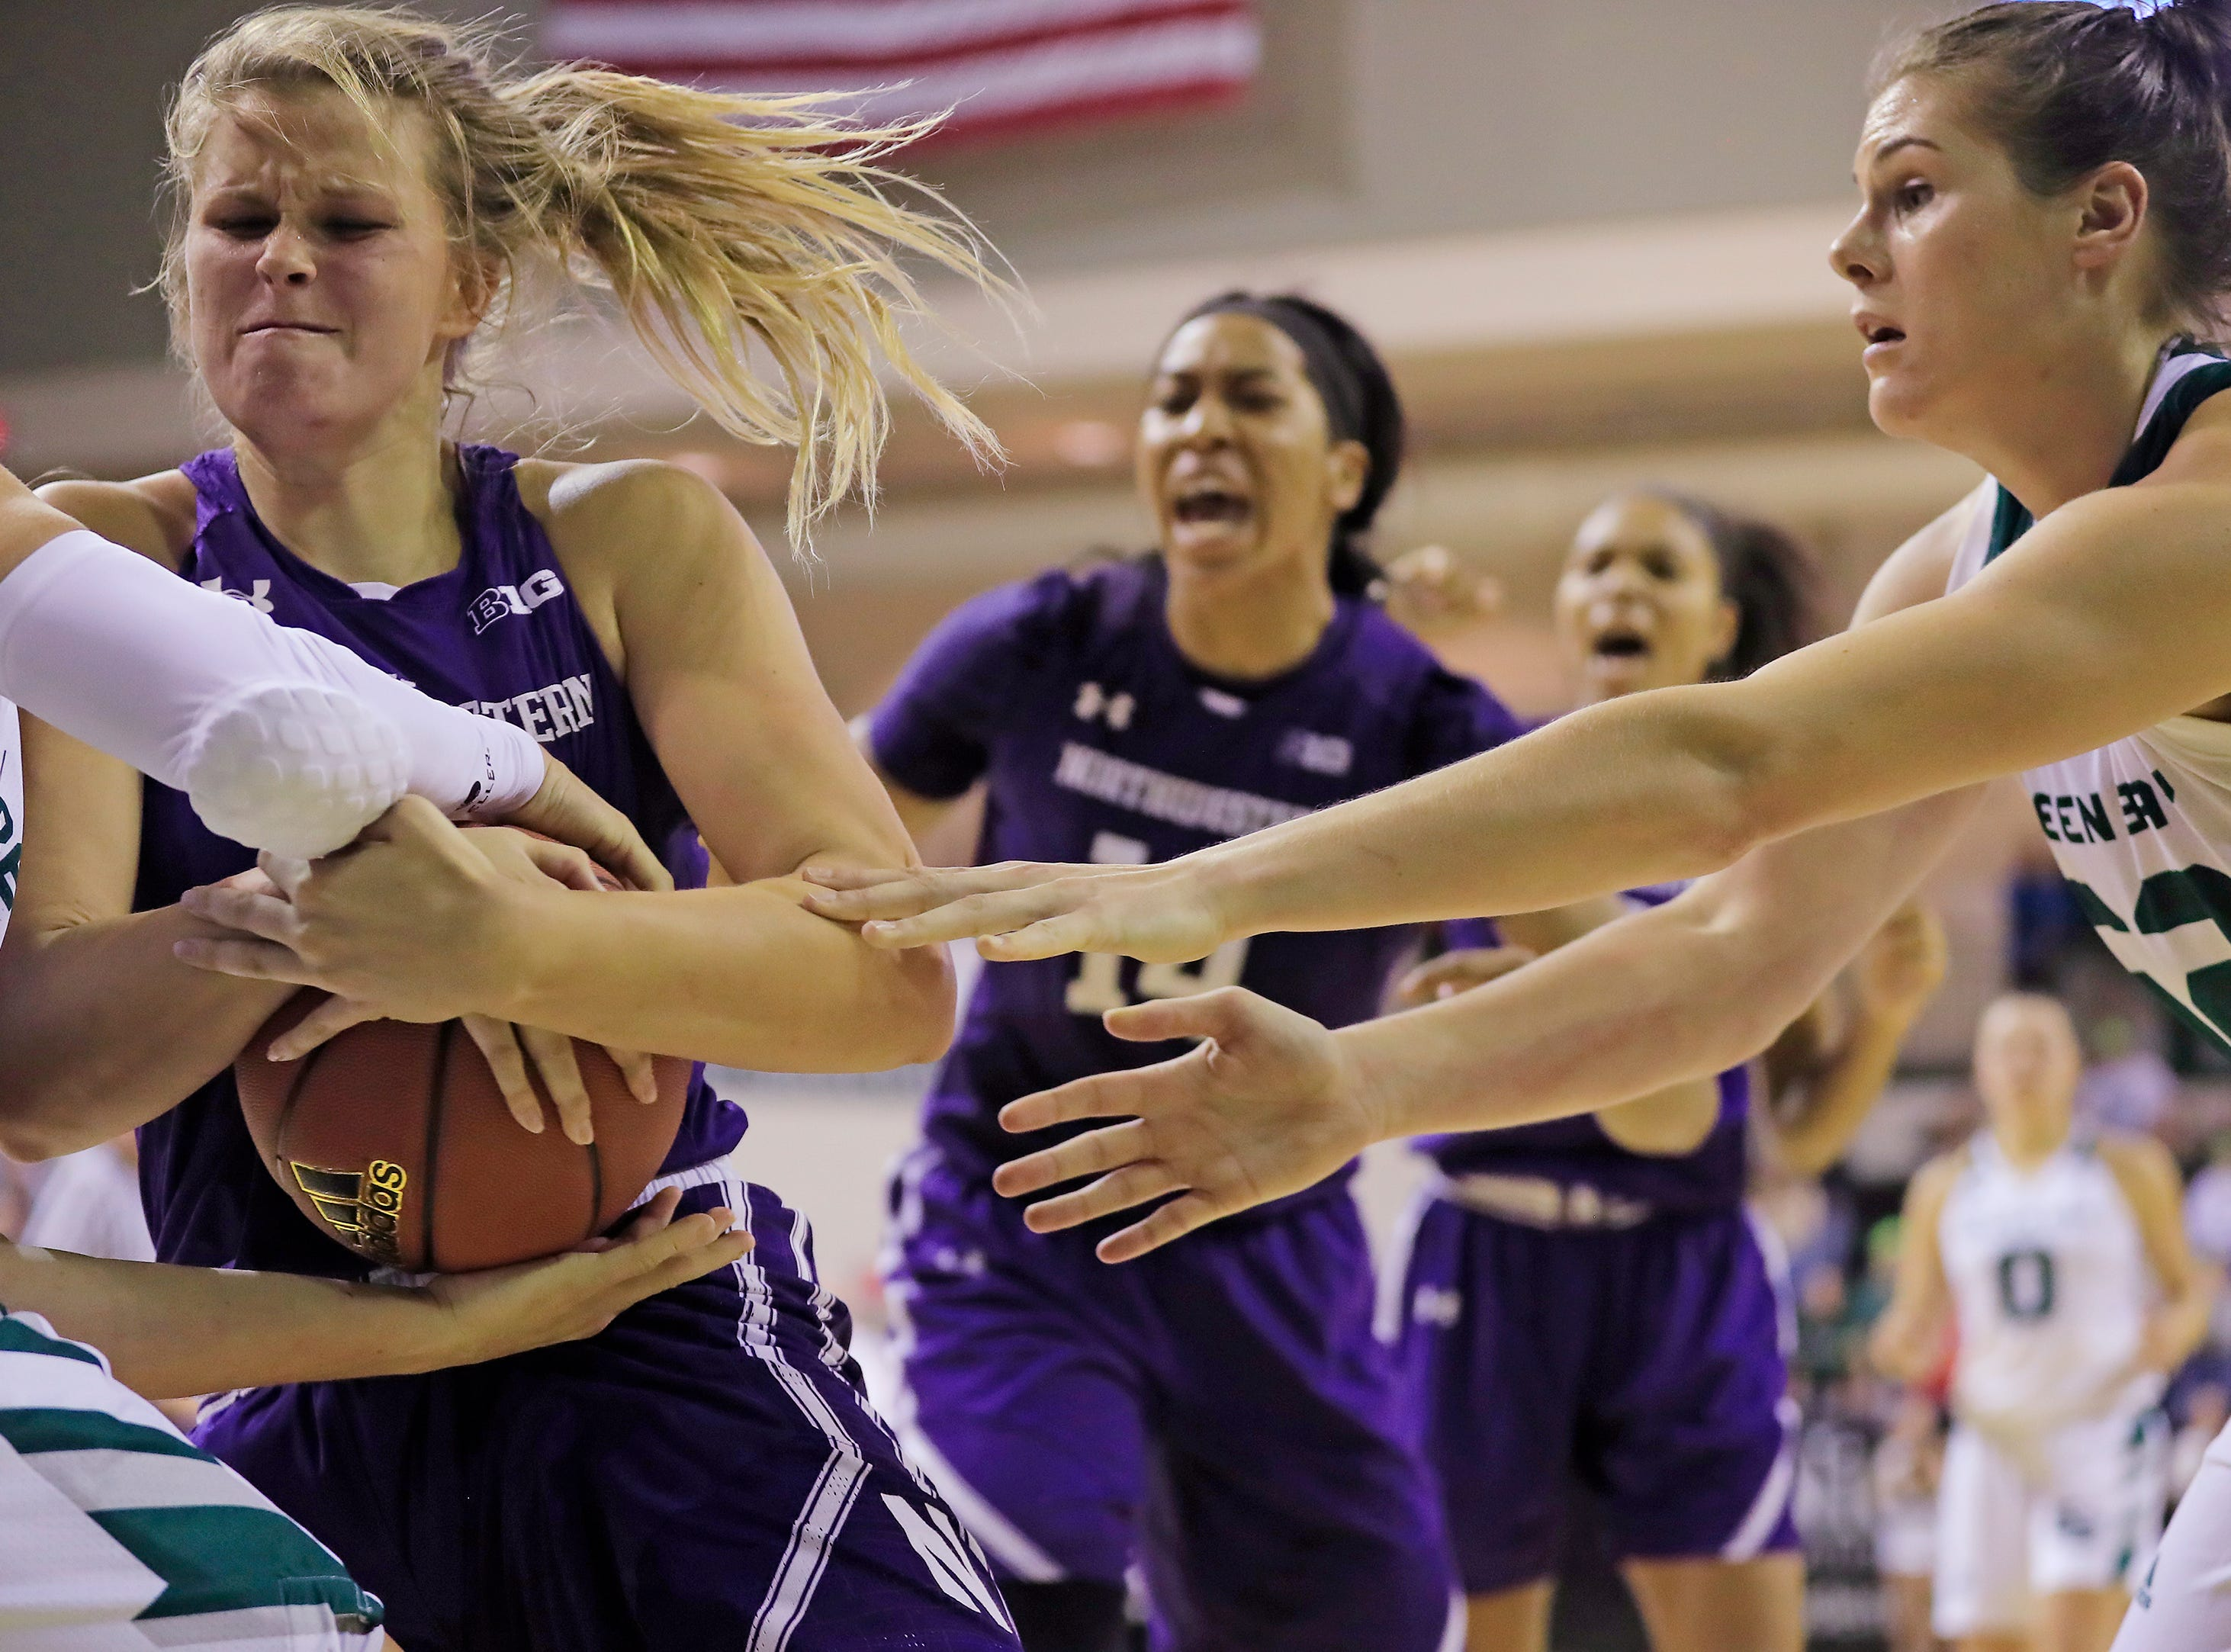 Northwestern Wildcats forward/center Abi Scheid (44) holds onto a rebound in the final minute against the Green Bay Phoenix in a women's NCAA basketball game at the Kress Center on Tuesday, November 6, 2018 in Green Bay, Wis.